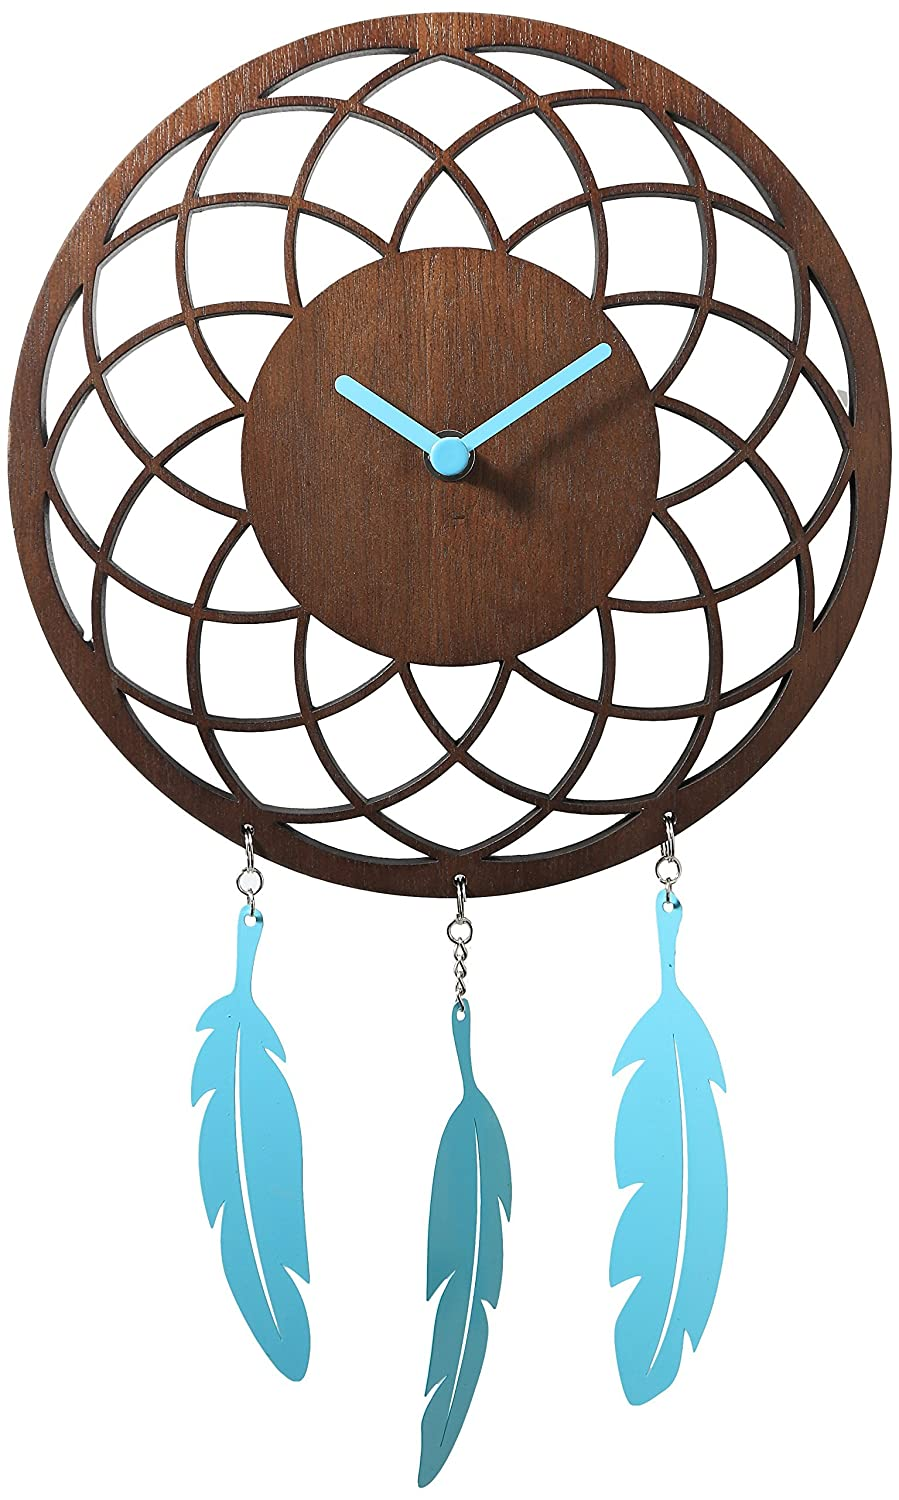 Unek Goods NeXtime Dreamcatcher Wall Clock, Wooden Face with Pink Hands and Metal Feathers, Battery Operated, Round, White